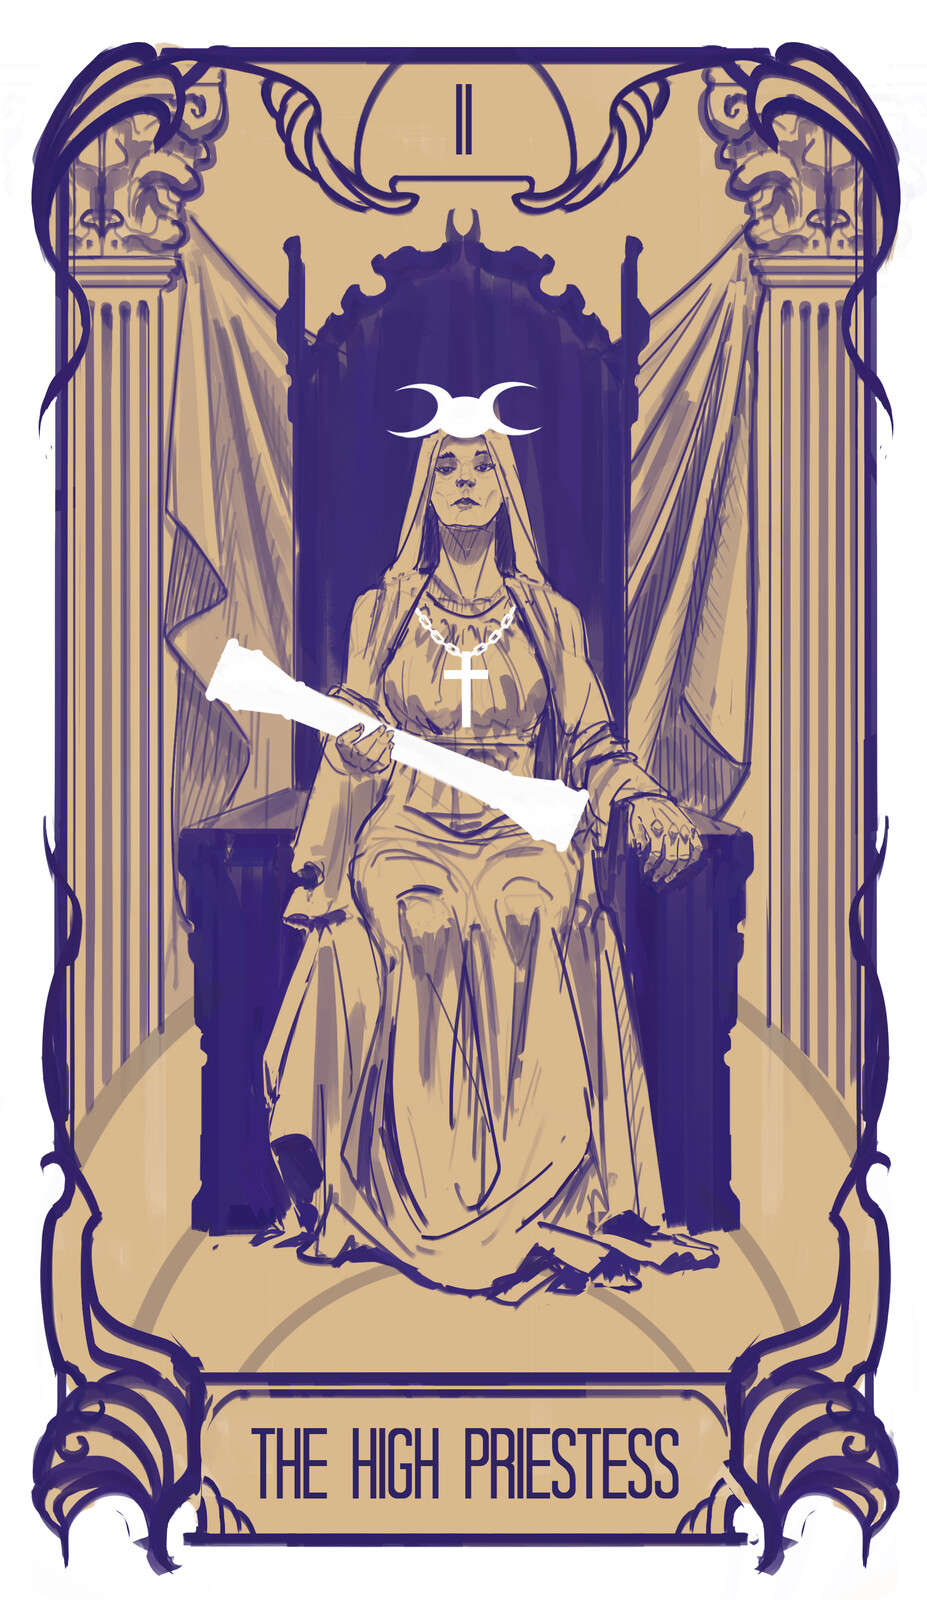 2. The high priestess